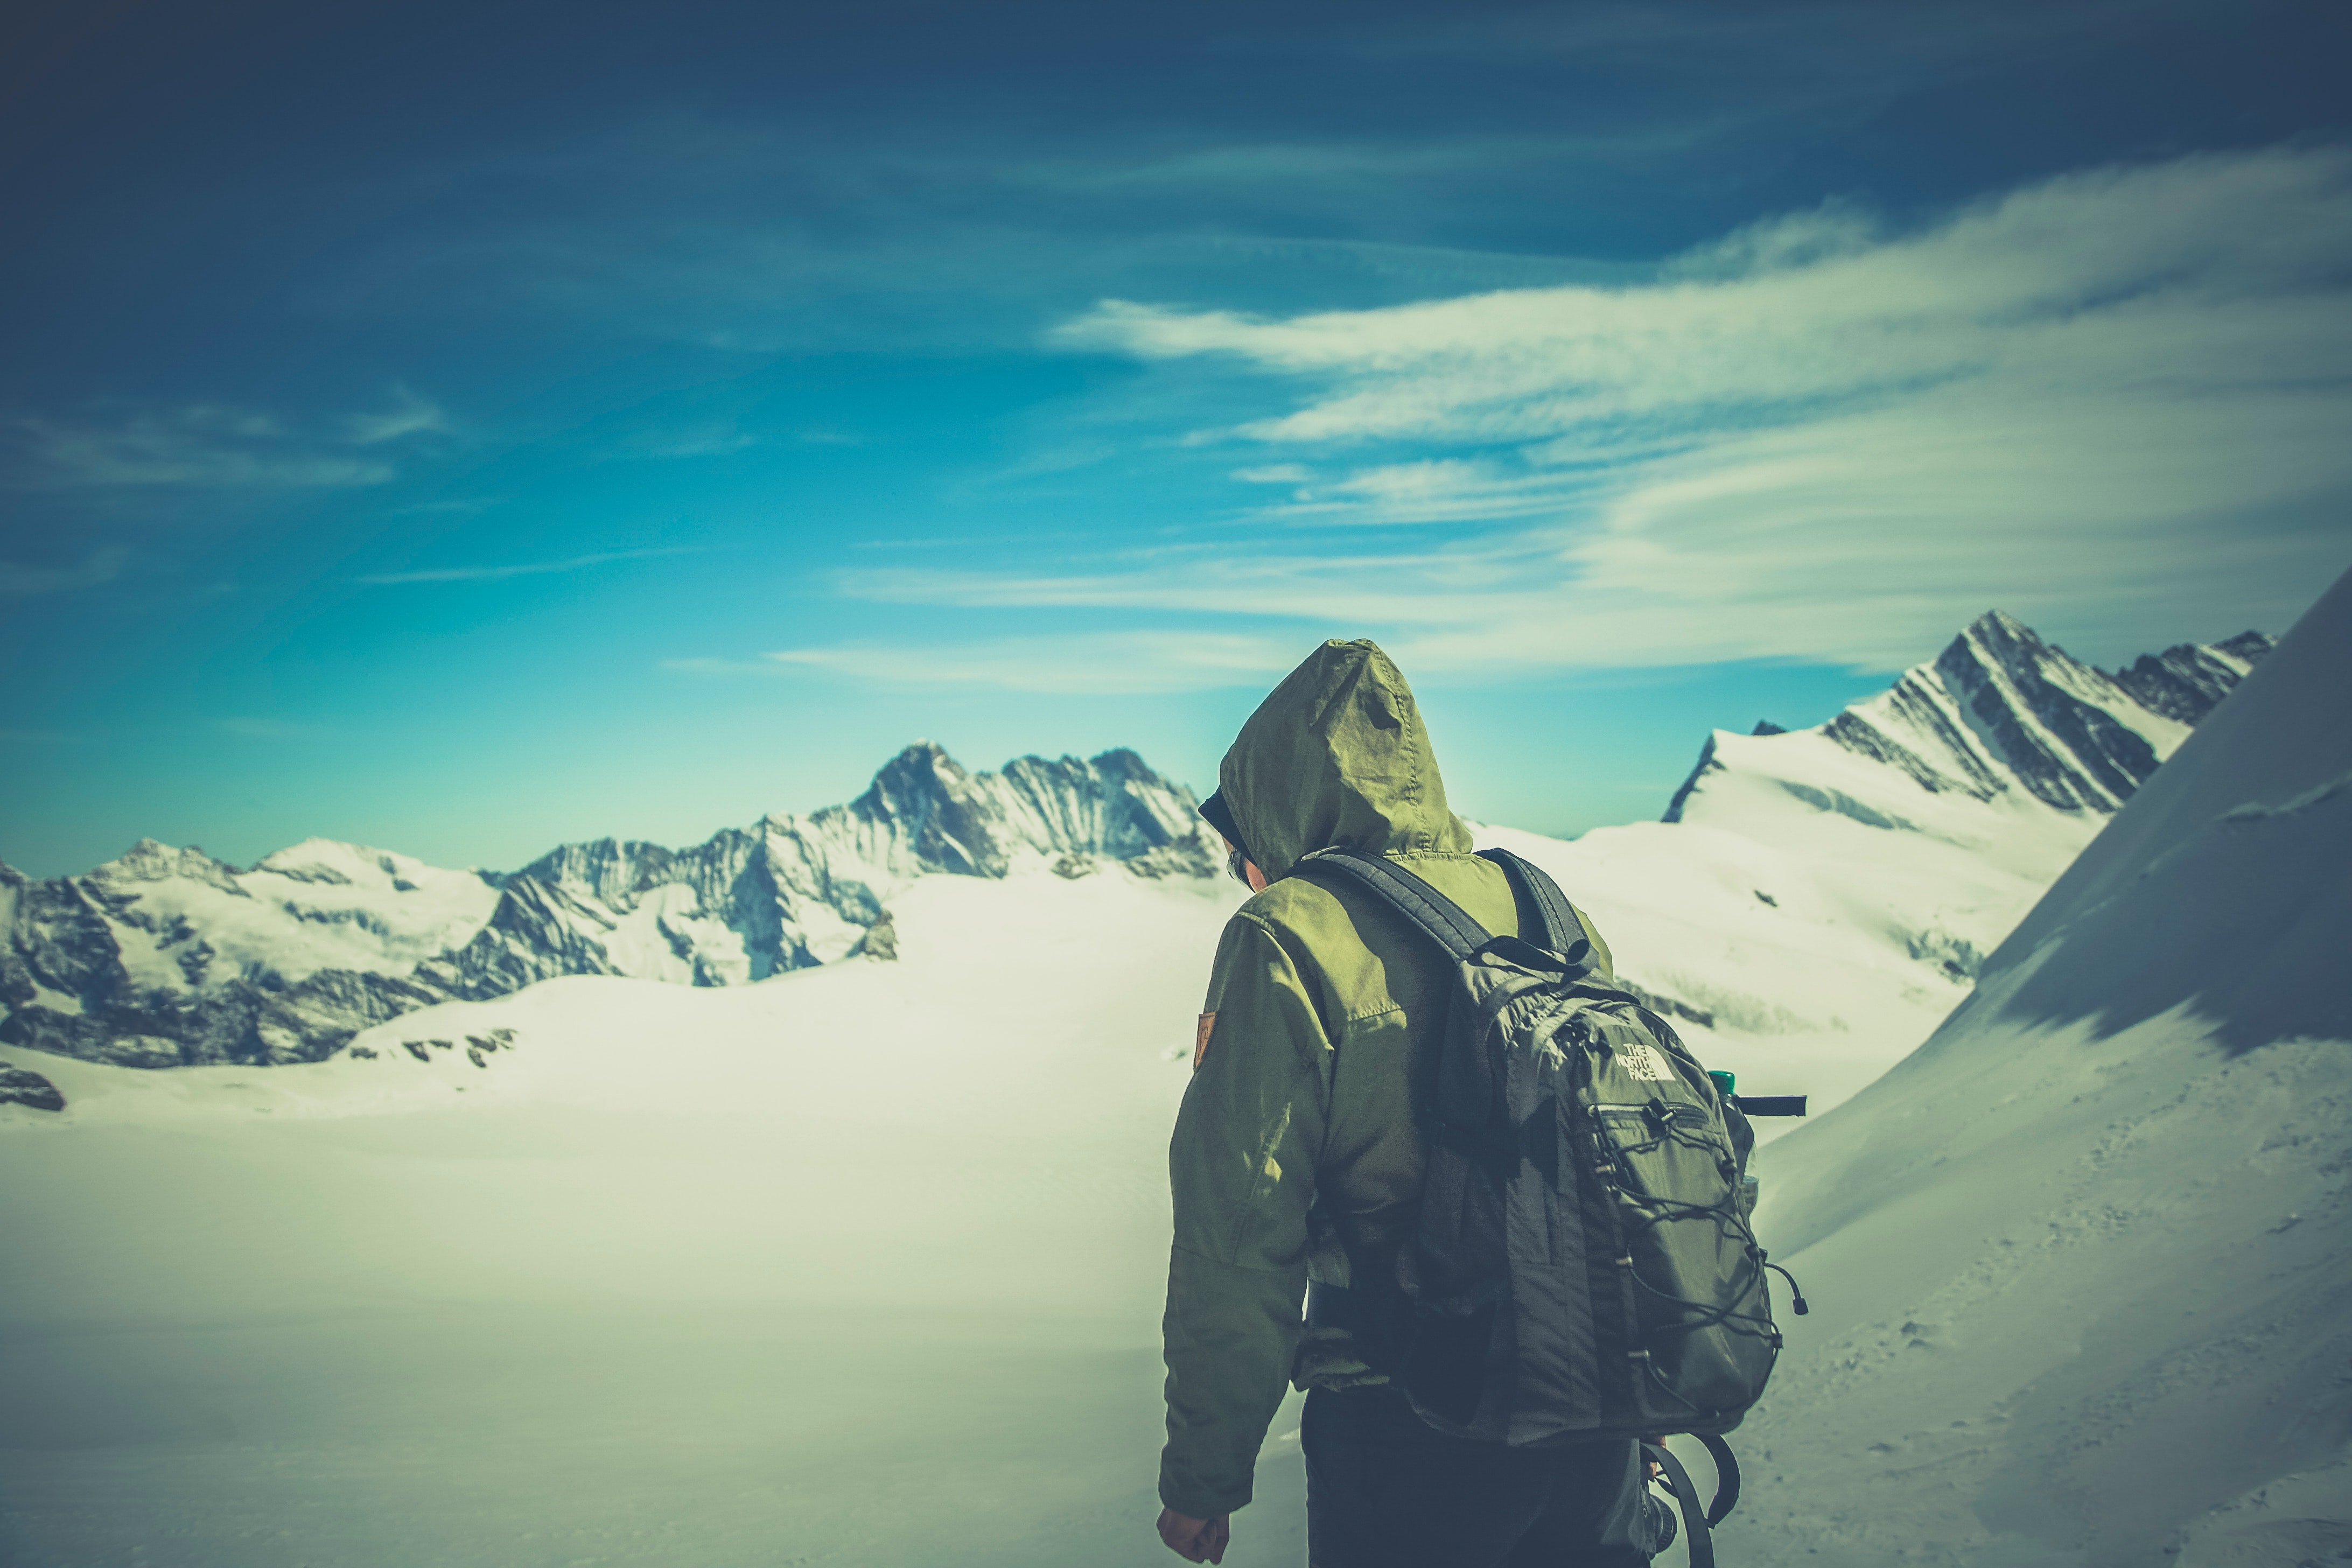 Person Wearing Green Jacket Walking on White Snow Covered Mountain, Alone, Backpack, Climbing, Cold, HQ Photo